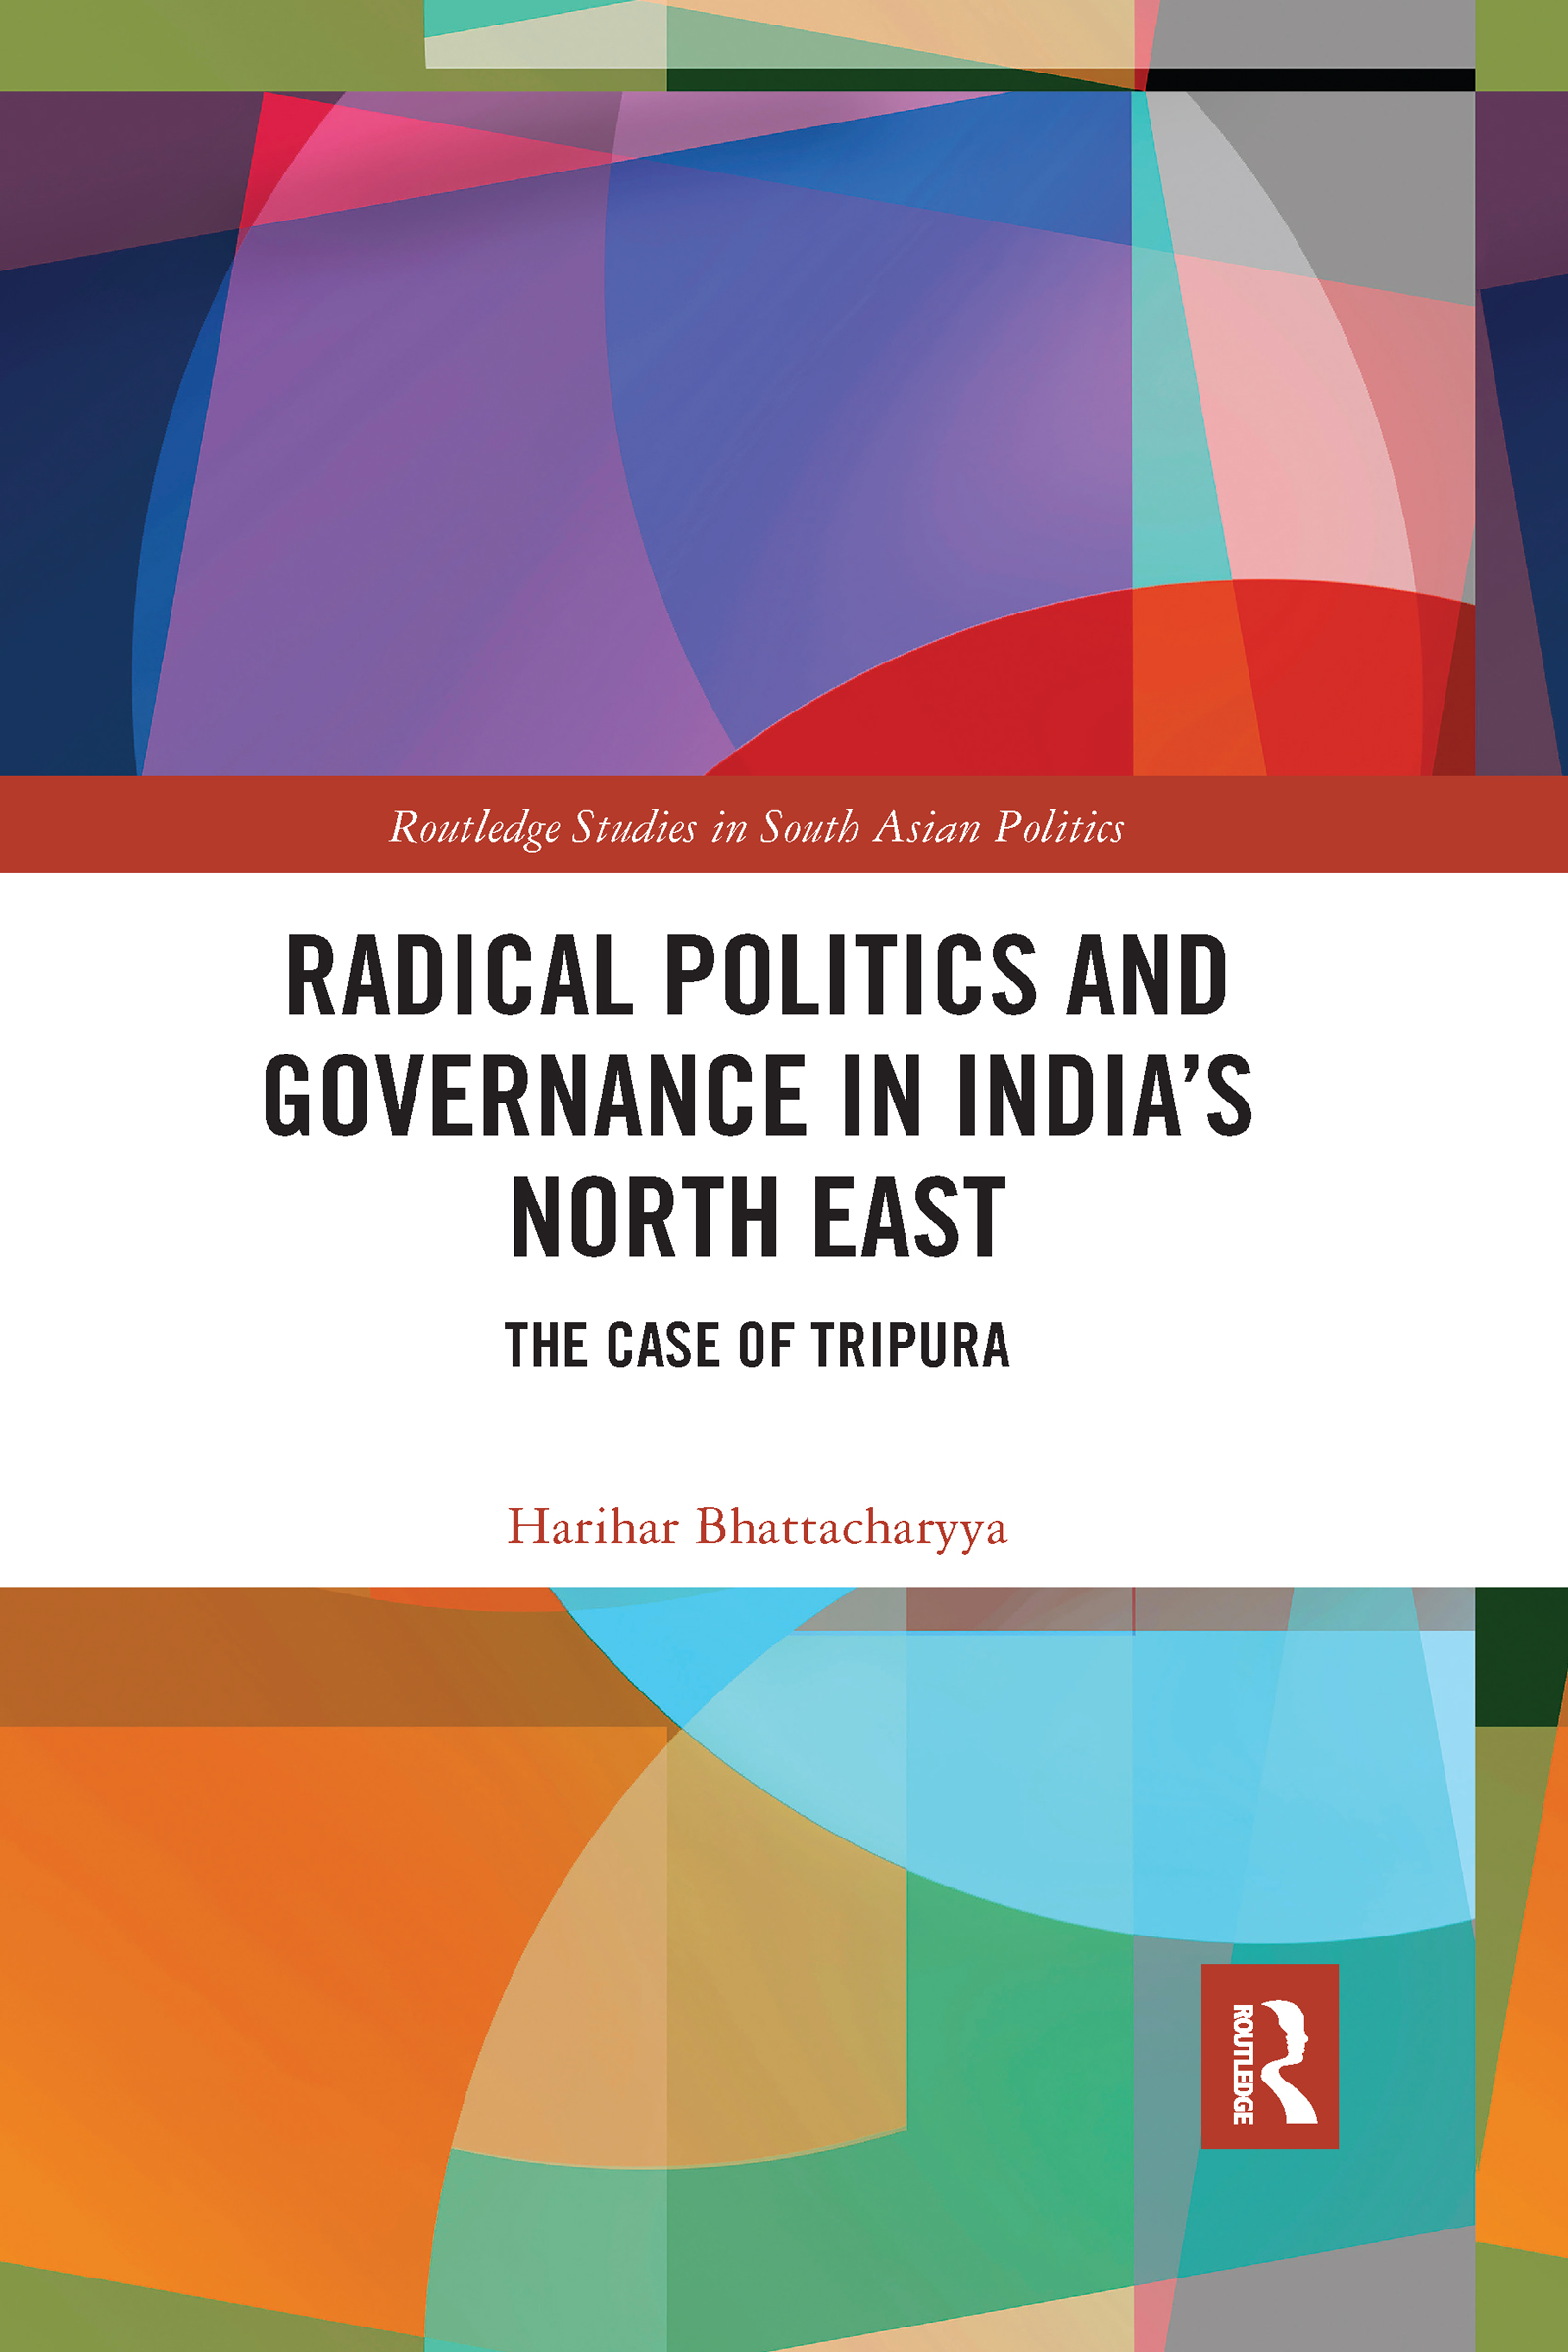 Radical Politics and Governance in India's North East